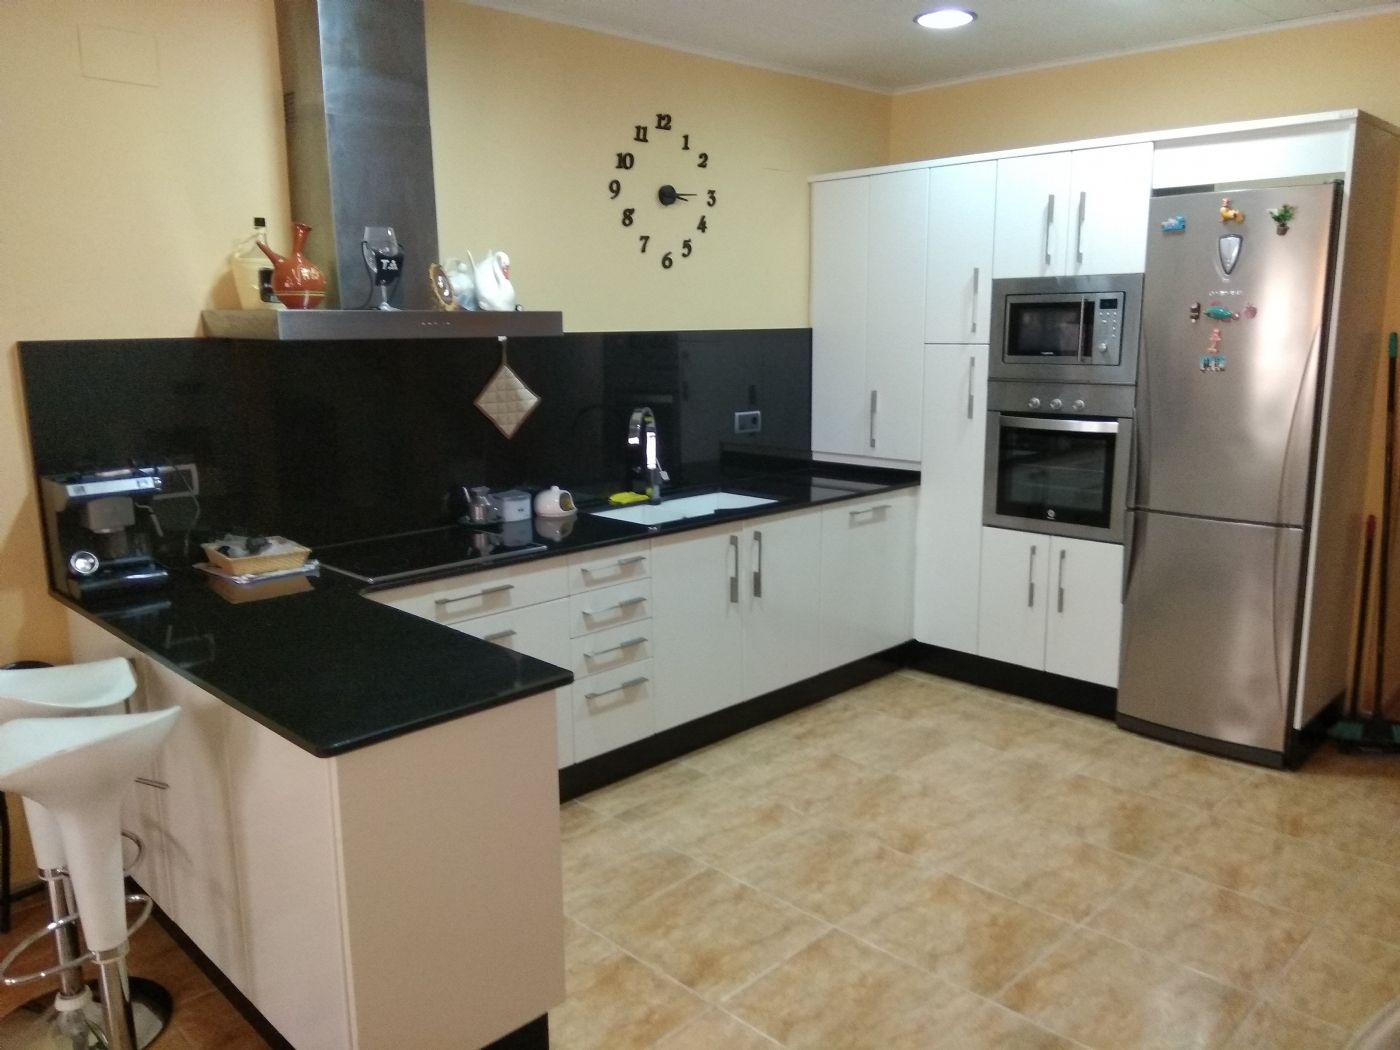 Semi detached house in Carrer soledat, 21. Bonita casa con salida a dos calles.